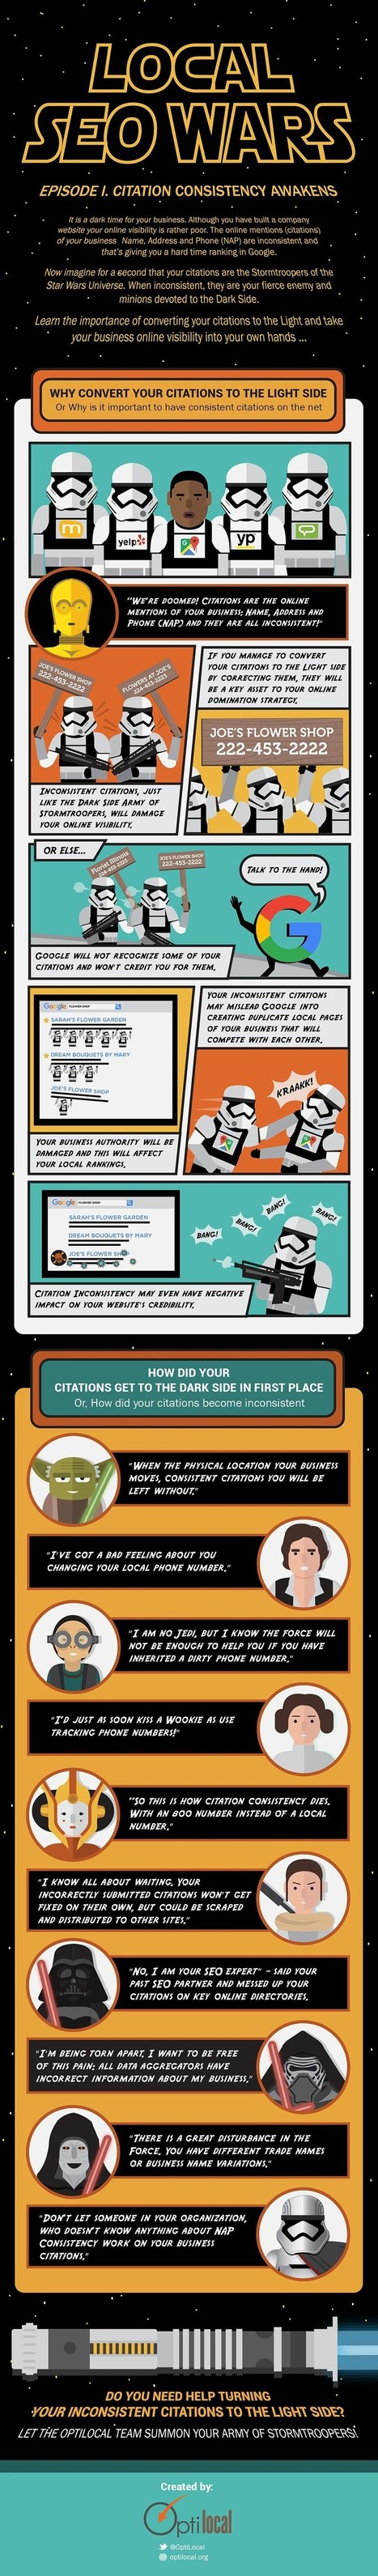 Guide - Local SEO explained the Star Wars way | All Infographics | Scoop.it